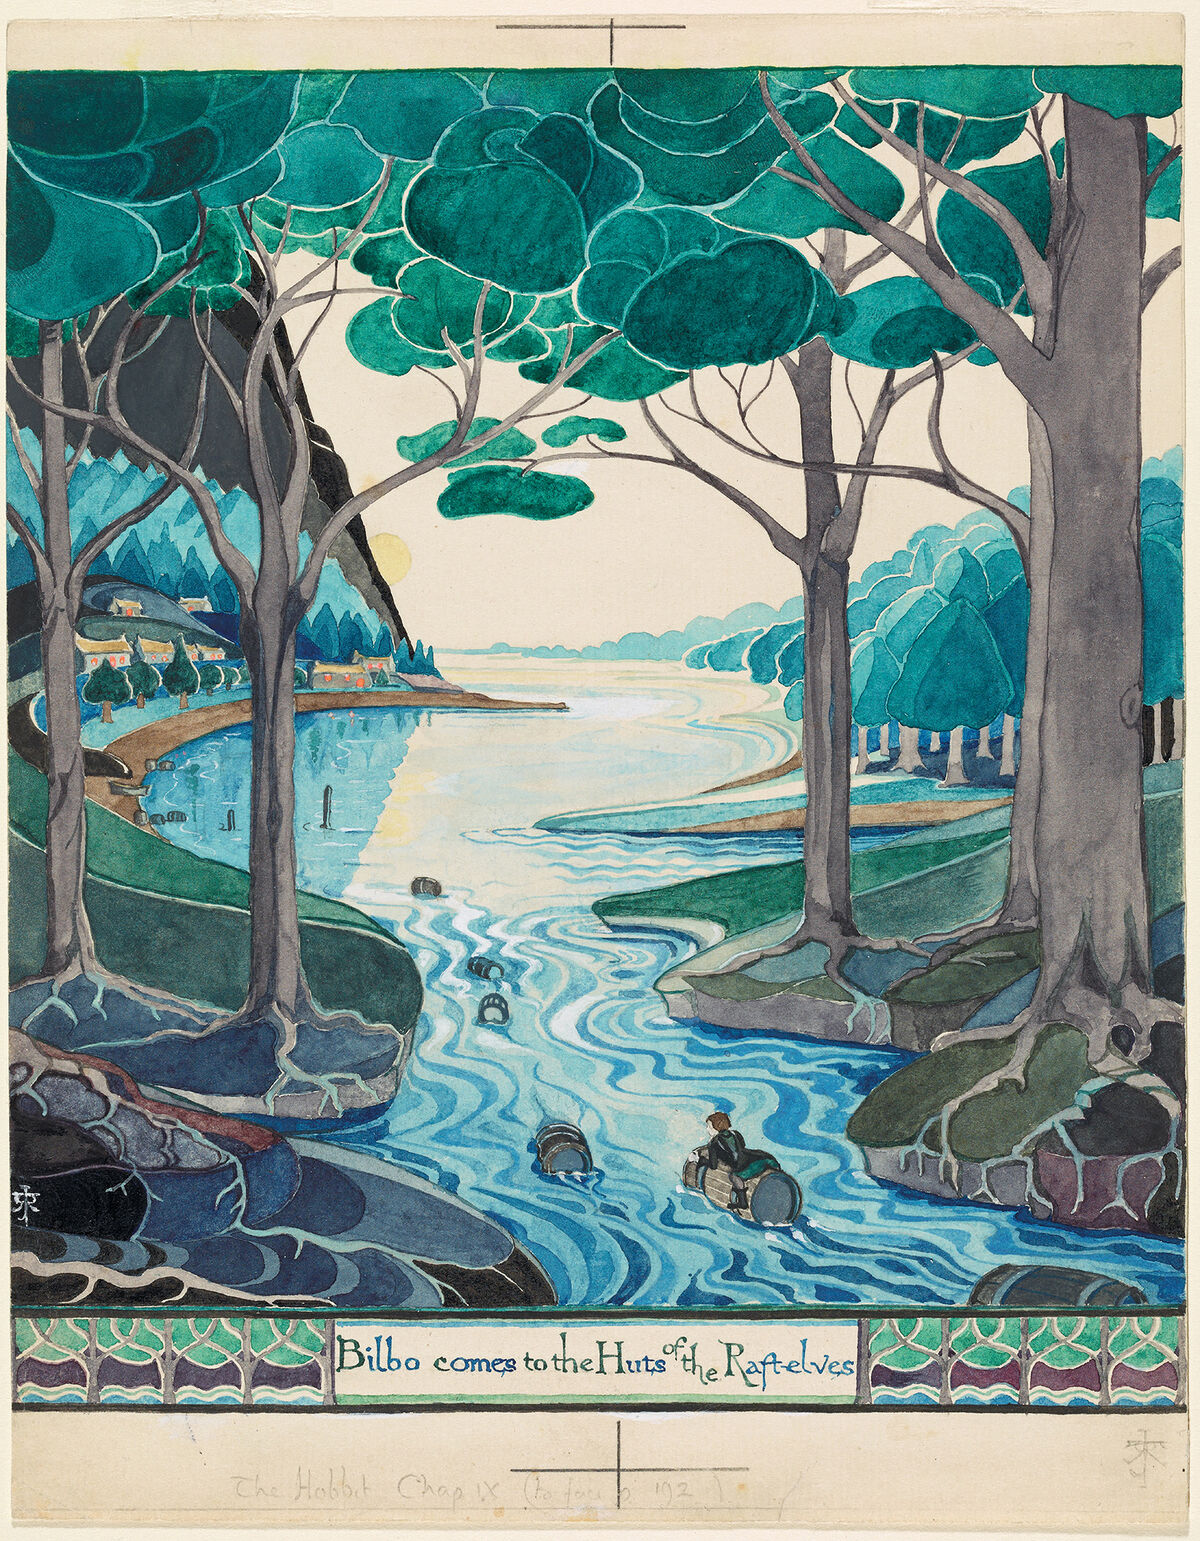 J. R. R. Tolkien, Bilbo comes to the Huts of the Raft-elves, 1937. © The Tolkien Estate Limited 1937.